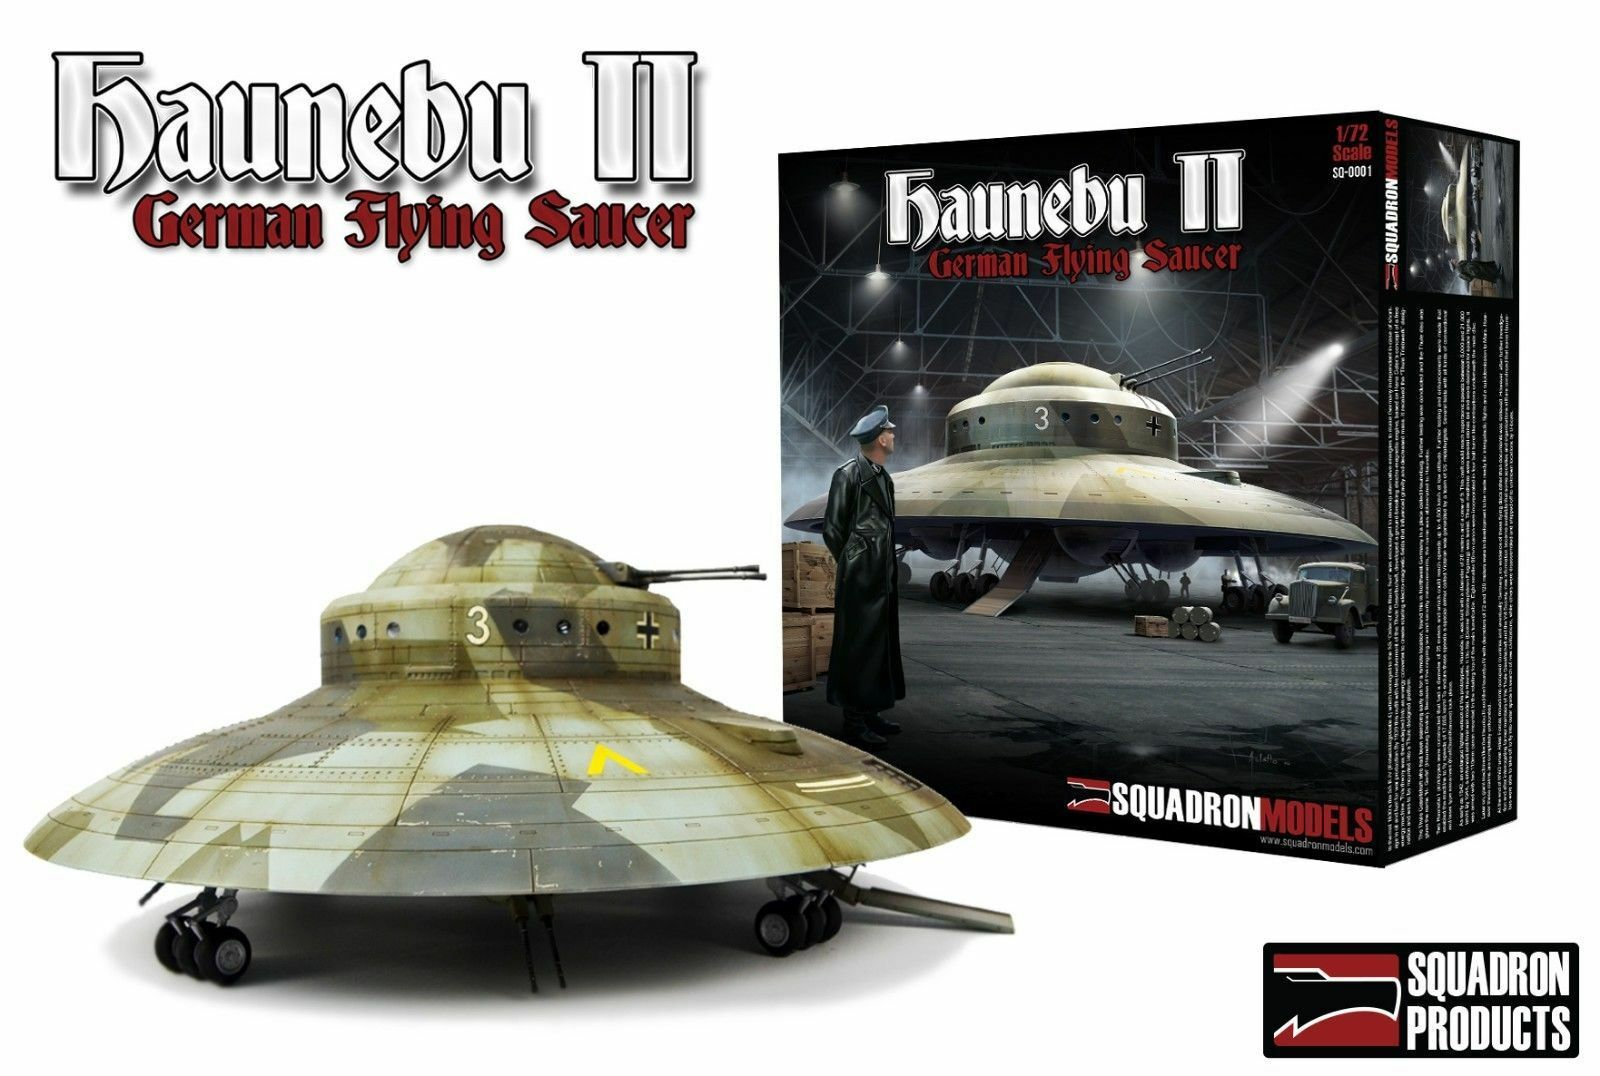 1 72 Squadron Haunebu II, 14  Nazi Flying Saucer secret weapon